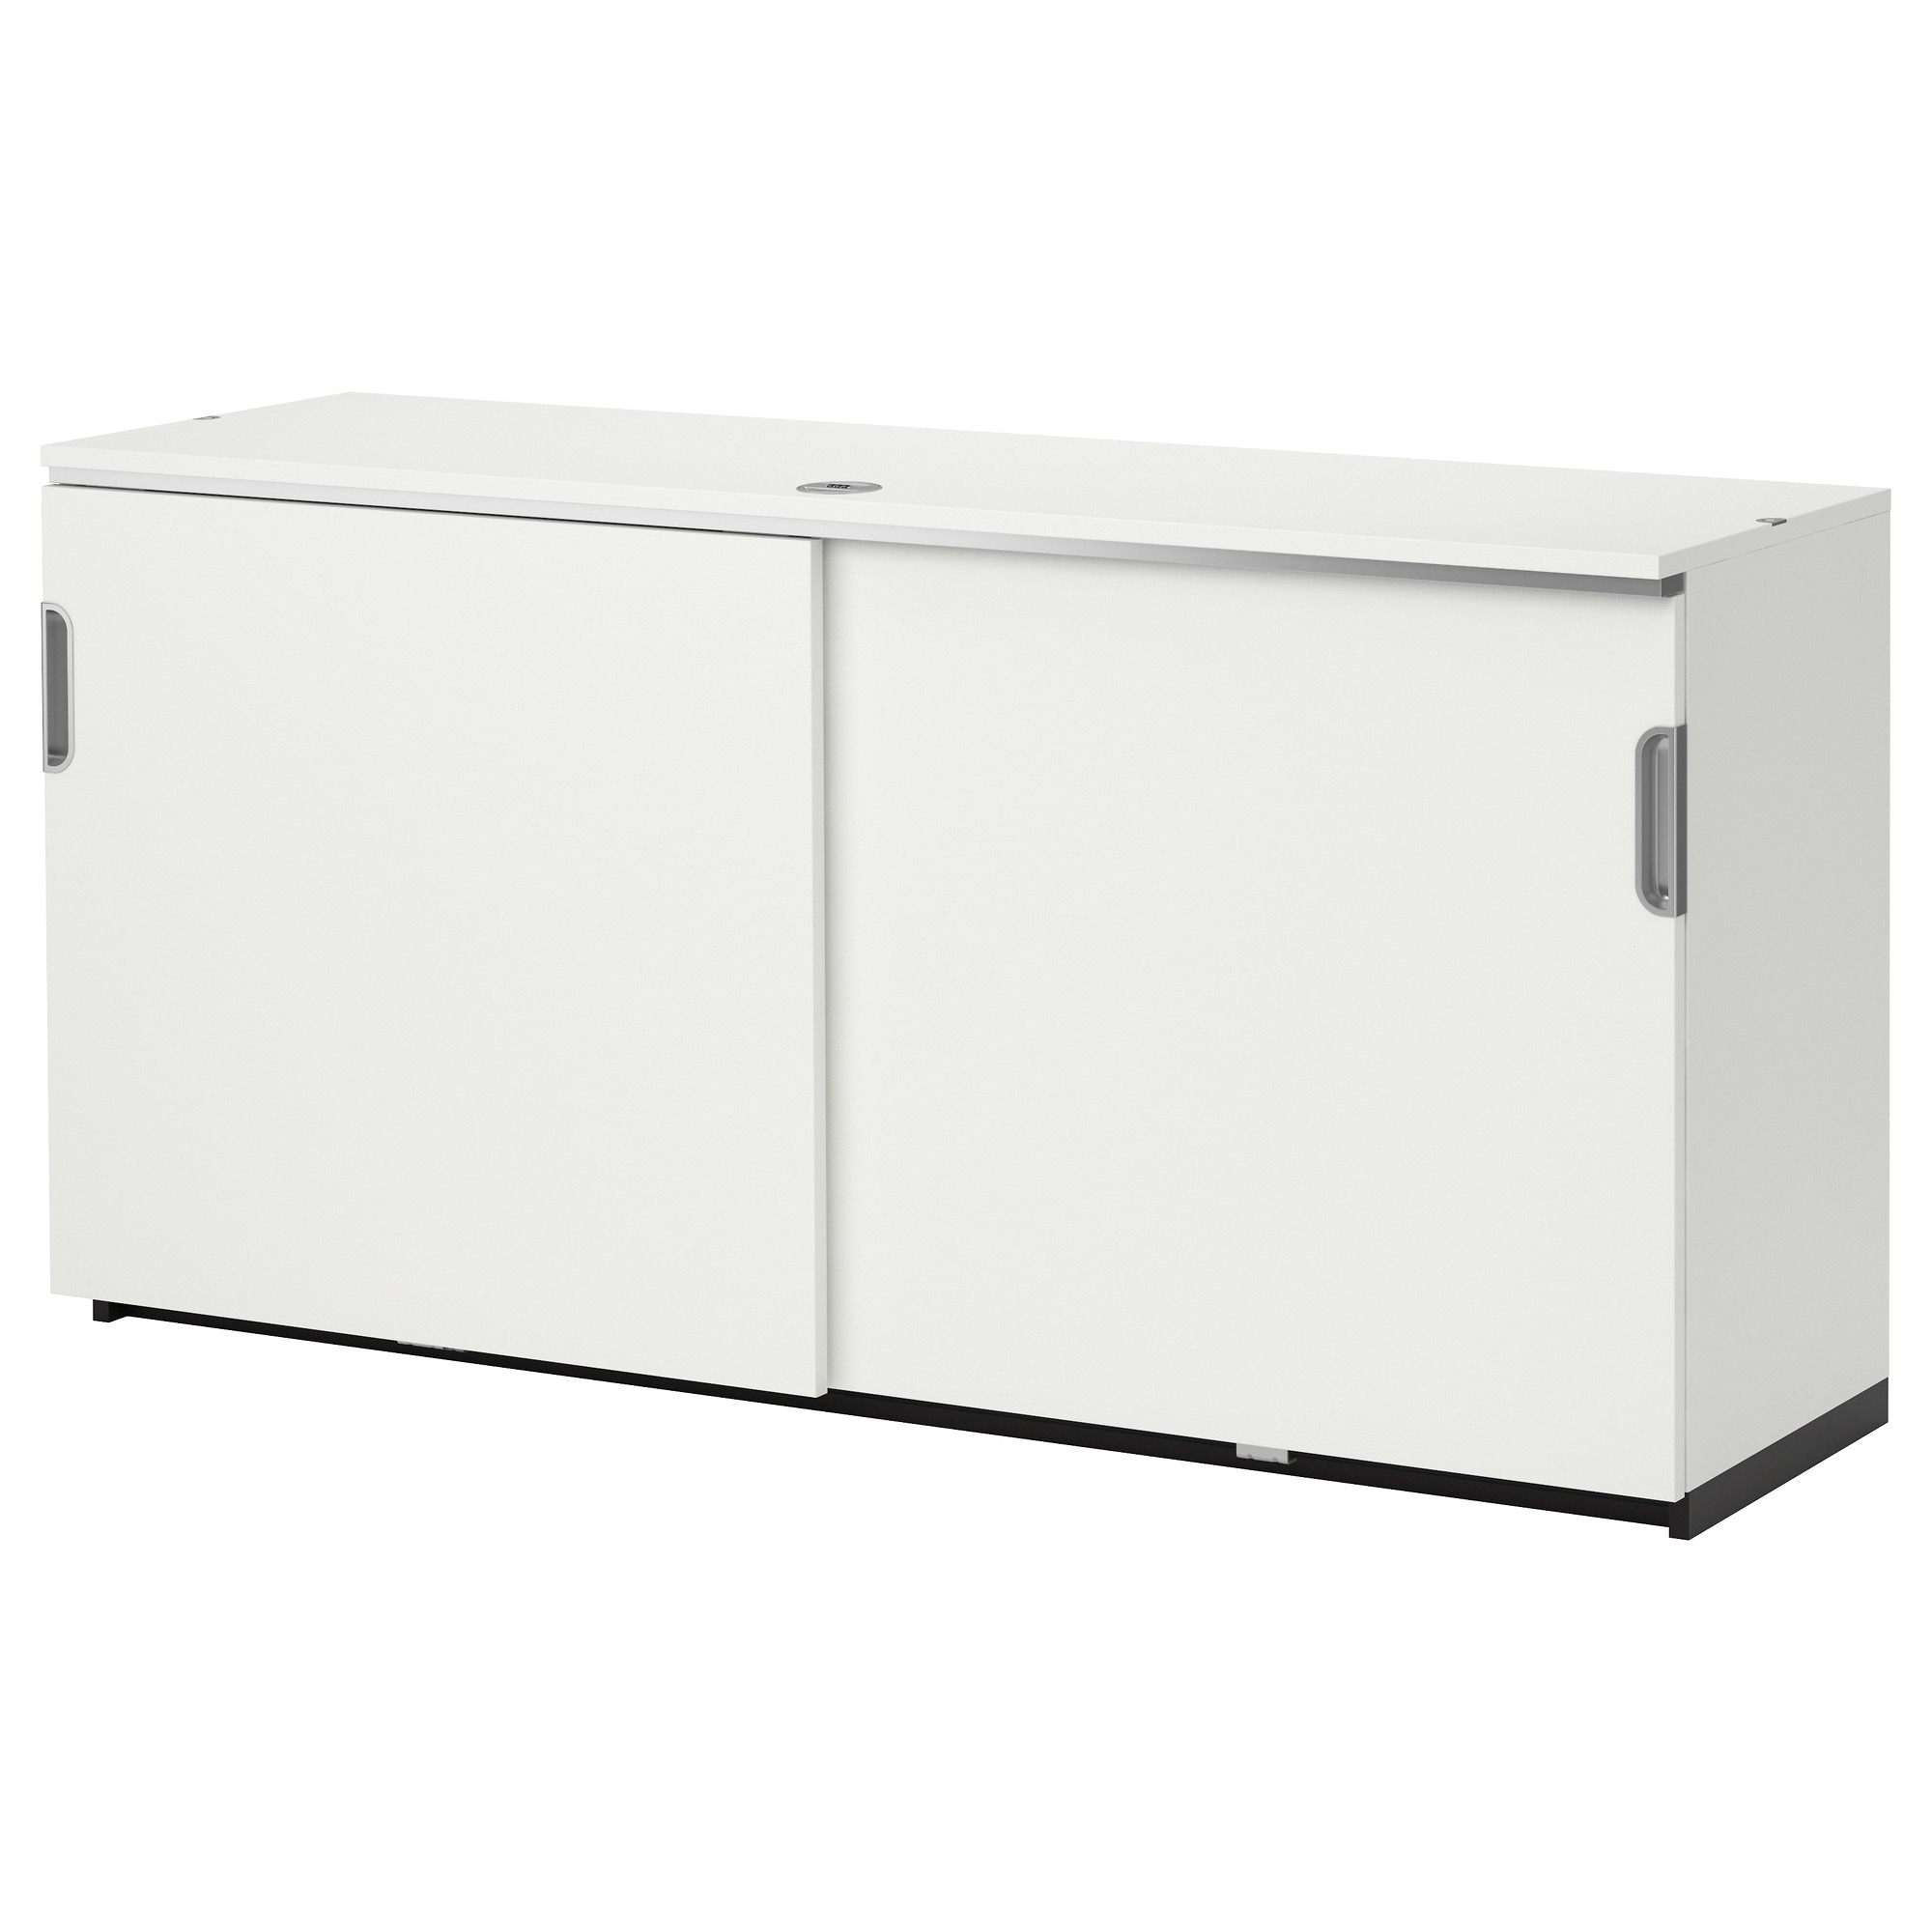 Ikea Schrank Weiß Hochglanz ~ Cabinets Ikea Home Office Ideas Office Second sun co